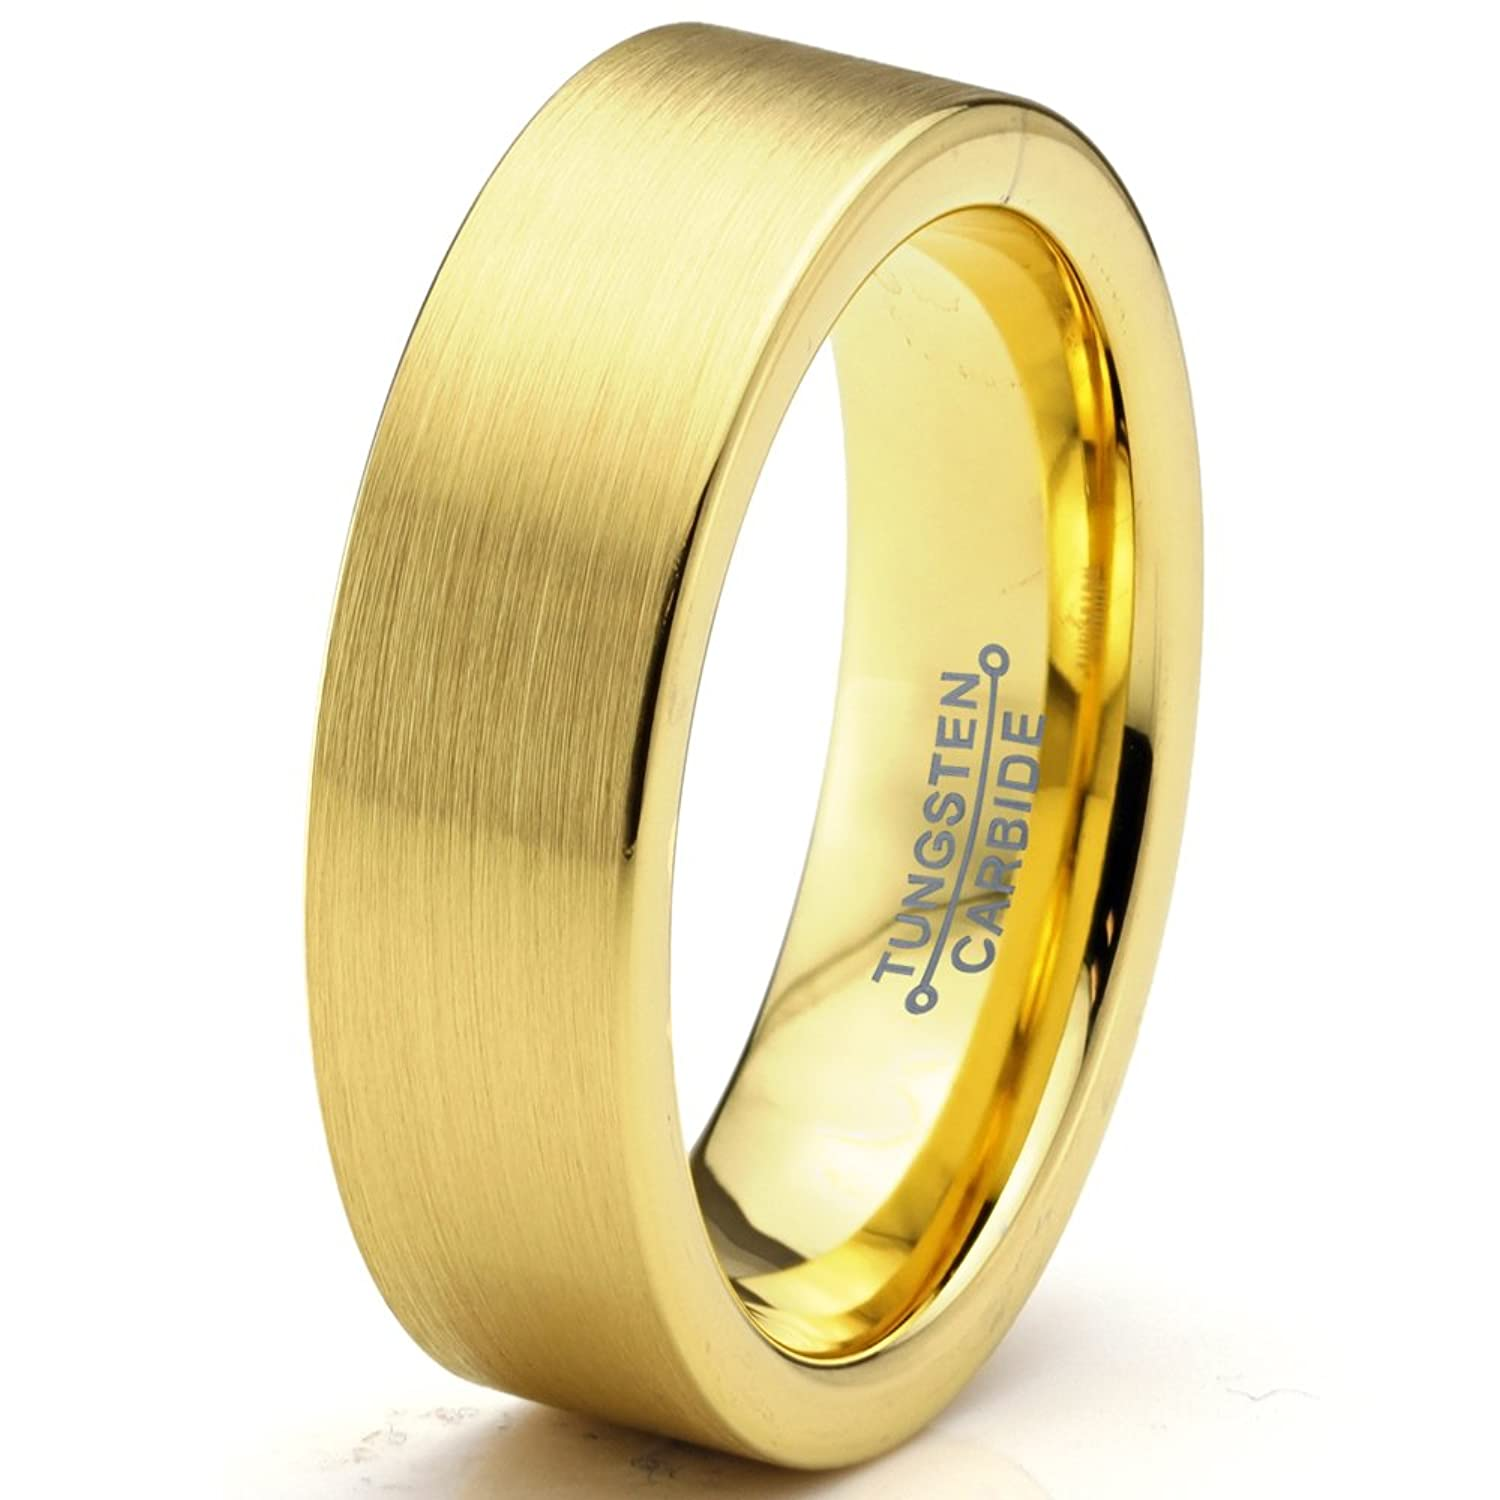 Charming Jewelers Tungsten Wedding Band Ring 6mm for Men Women Comfort Fit 18K Yellow Gold Plated Flat Cut Brushed Polished